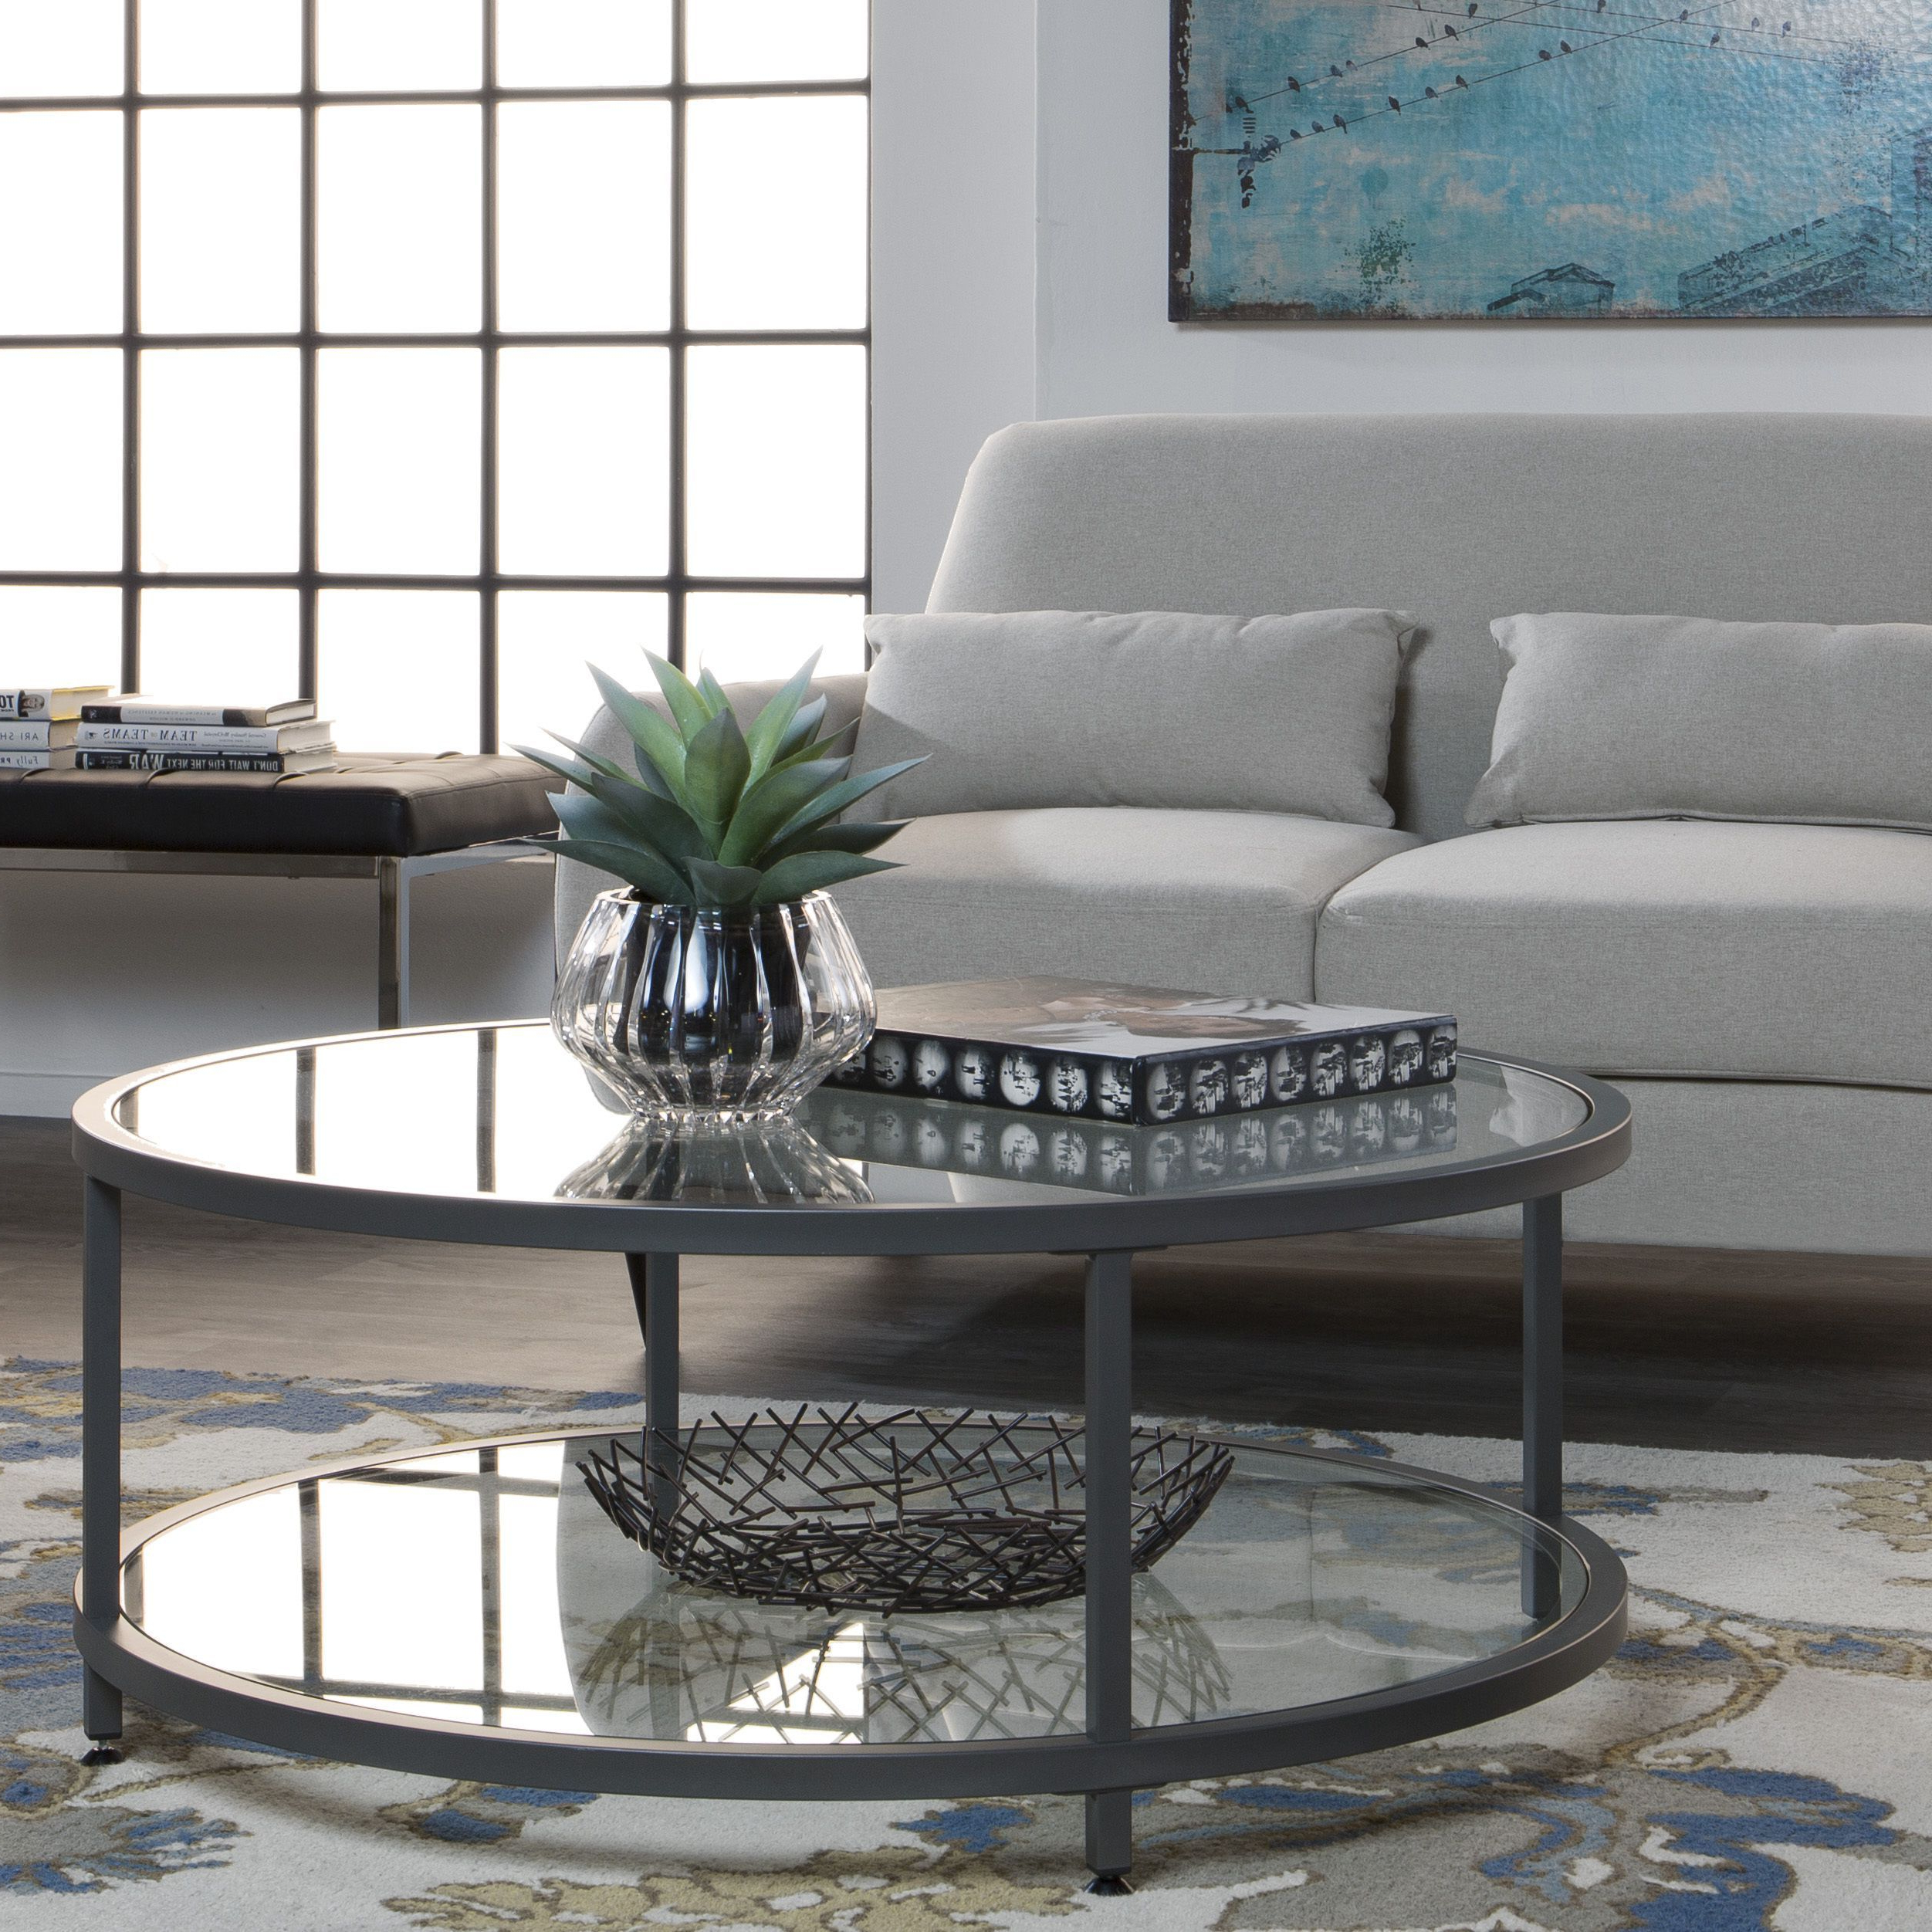 Studio Designs Clay Alder Home Blair Pewter Steel/glass Inside Most Recently Released Elowen Round Glass Coffee Tables (View 15 of 20)